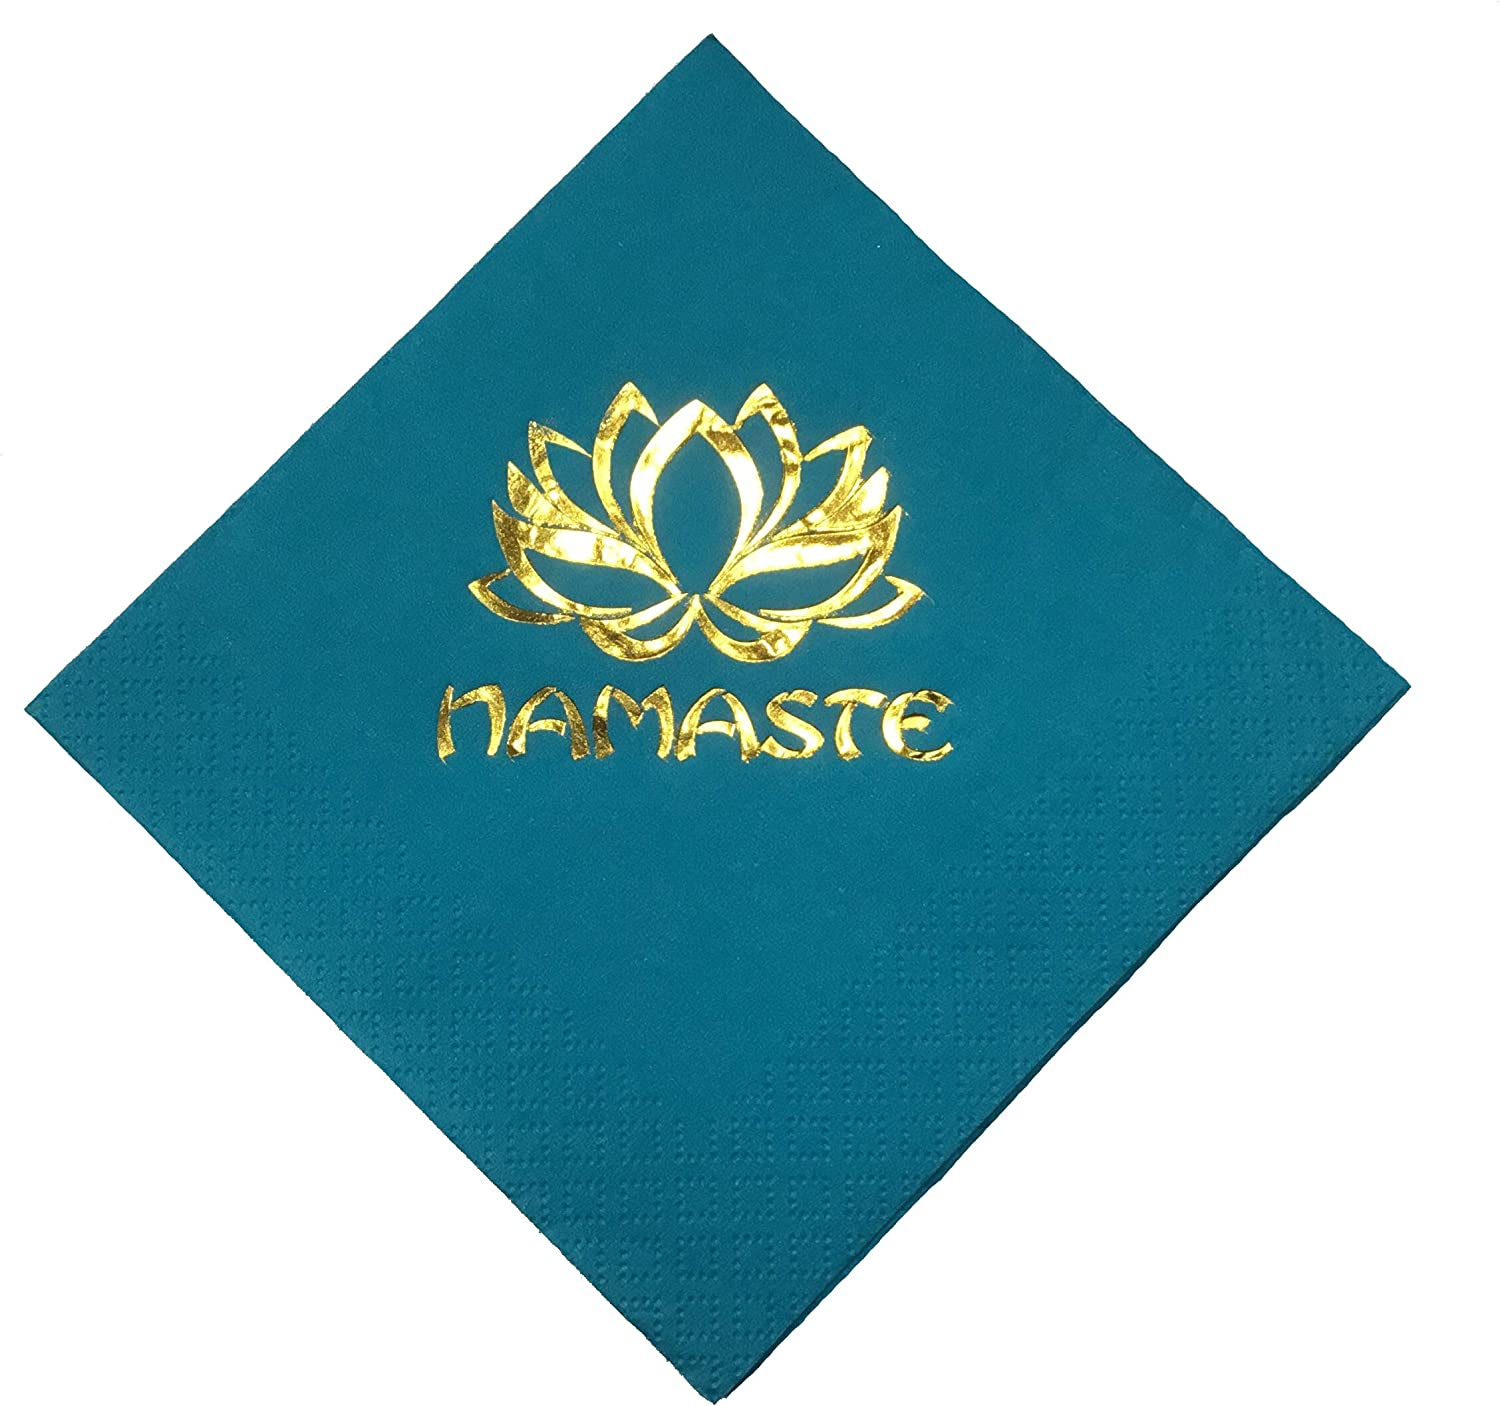 Yoga Napkins Namaste Party Beverage Cocktail Size 20 Count Paper Gift Ready